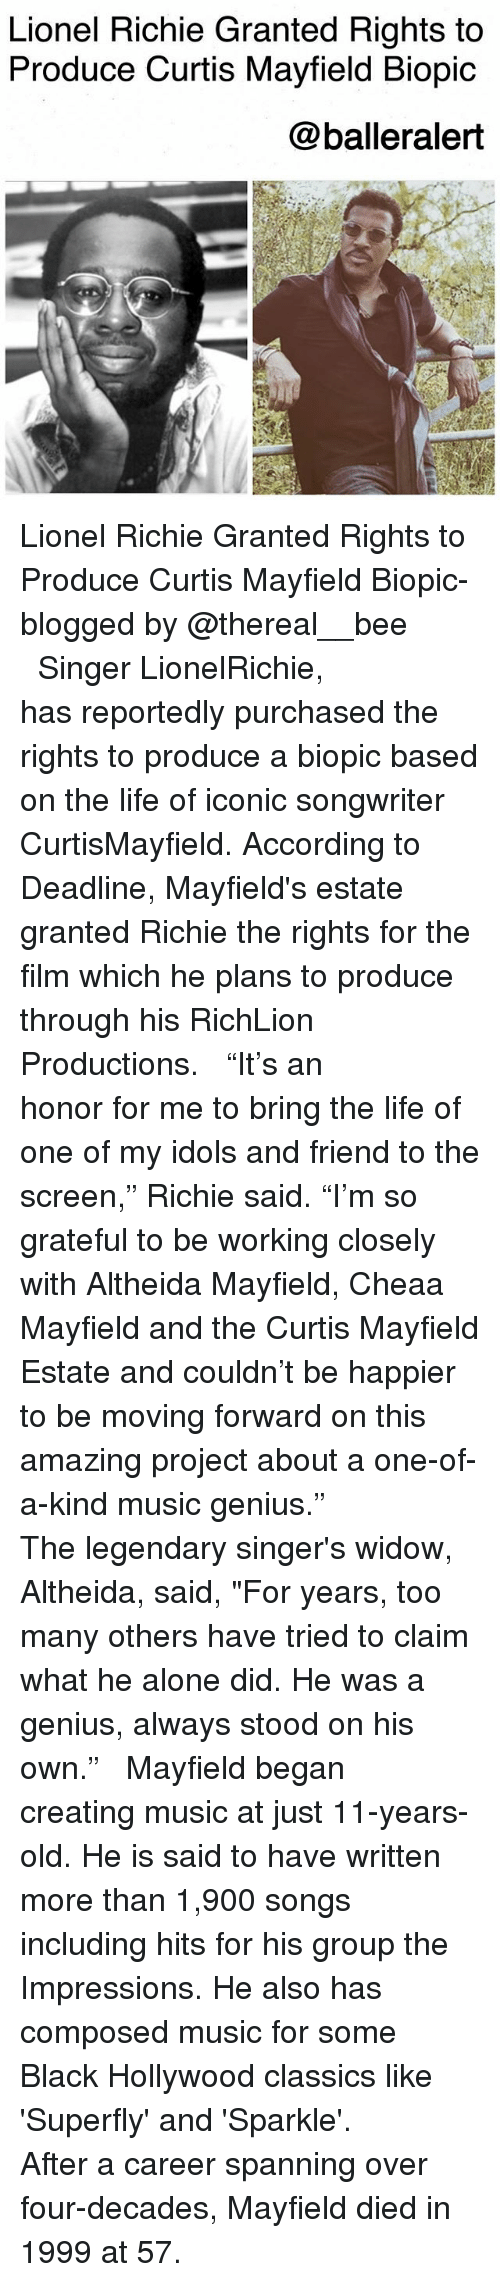 """idols: Lionel Richie Granted Rights to  Produce Curtis Mayfield Biopic  @balleralert Lionel Richie Granted Rights to Produce Curtis Mayfield Biopic-blogged by @thereal__bee ⠀⠀⠀⠀⠀⠀⠀⠀⠀ ⠀⠀ Singer LionelRichie, has reportedly purchased the rights to produce a biopic based on the life of iconic songwriter CurtisMayfield. According to Deadline, Mayfield's estate granted Richie the rights for the film which he plans to produce through his RichLion Productions. ⠀⠀⠀⠀⠀⠀⠀⠀⠀ ⠀⠀ """"It's an honor for me to bring the life of one of my idols and friend to the screen,"""" Richie said. """"I'm so grateful to be working closely with Altheida Mayfield, Cheaa Mayfield and the Curtis Mayfield Estate and couldn't be happier to be moving forward on this amazing project about a one-of-a-kind music genius."""" ⠀⠀⠀⠀⠀⠀⠀⠀⠀ ⠀⠀ The legendary singer's widow, Altheida, said, """"For years, too many others have tried to claim what he alone did. He was a genius, always stood on his own."""" ⠀⠀⠀⠀⠀⠀⠀⠀⠀ ⠀⠀ Mayfield began creating music at just 11-years-old. He is said to have written more than 1,900 songs including hits for his group the Impressions. He also has composed music for some Black Hollywood classics like 'Superfly' and 'Sparkle'. ⠀⠀⠀⠀⠀⠀⠀⠀⠀ ⠀⠀ After a career spanning over four-decades, Mayfield died in 1999 at 57."""